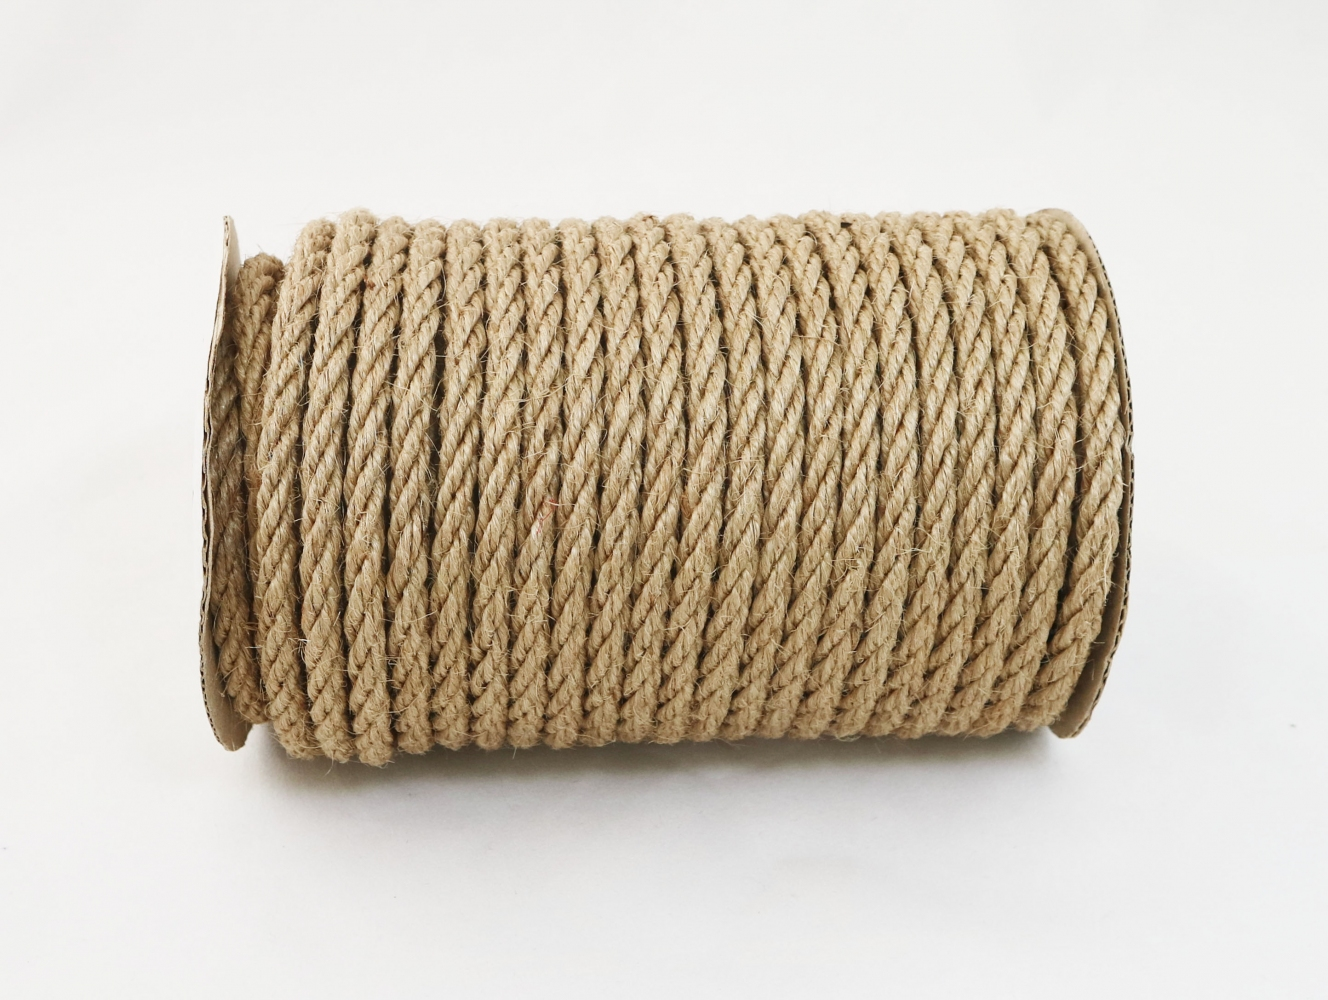 Jute polished rope, diameter 6mm, 25 meters - 3